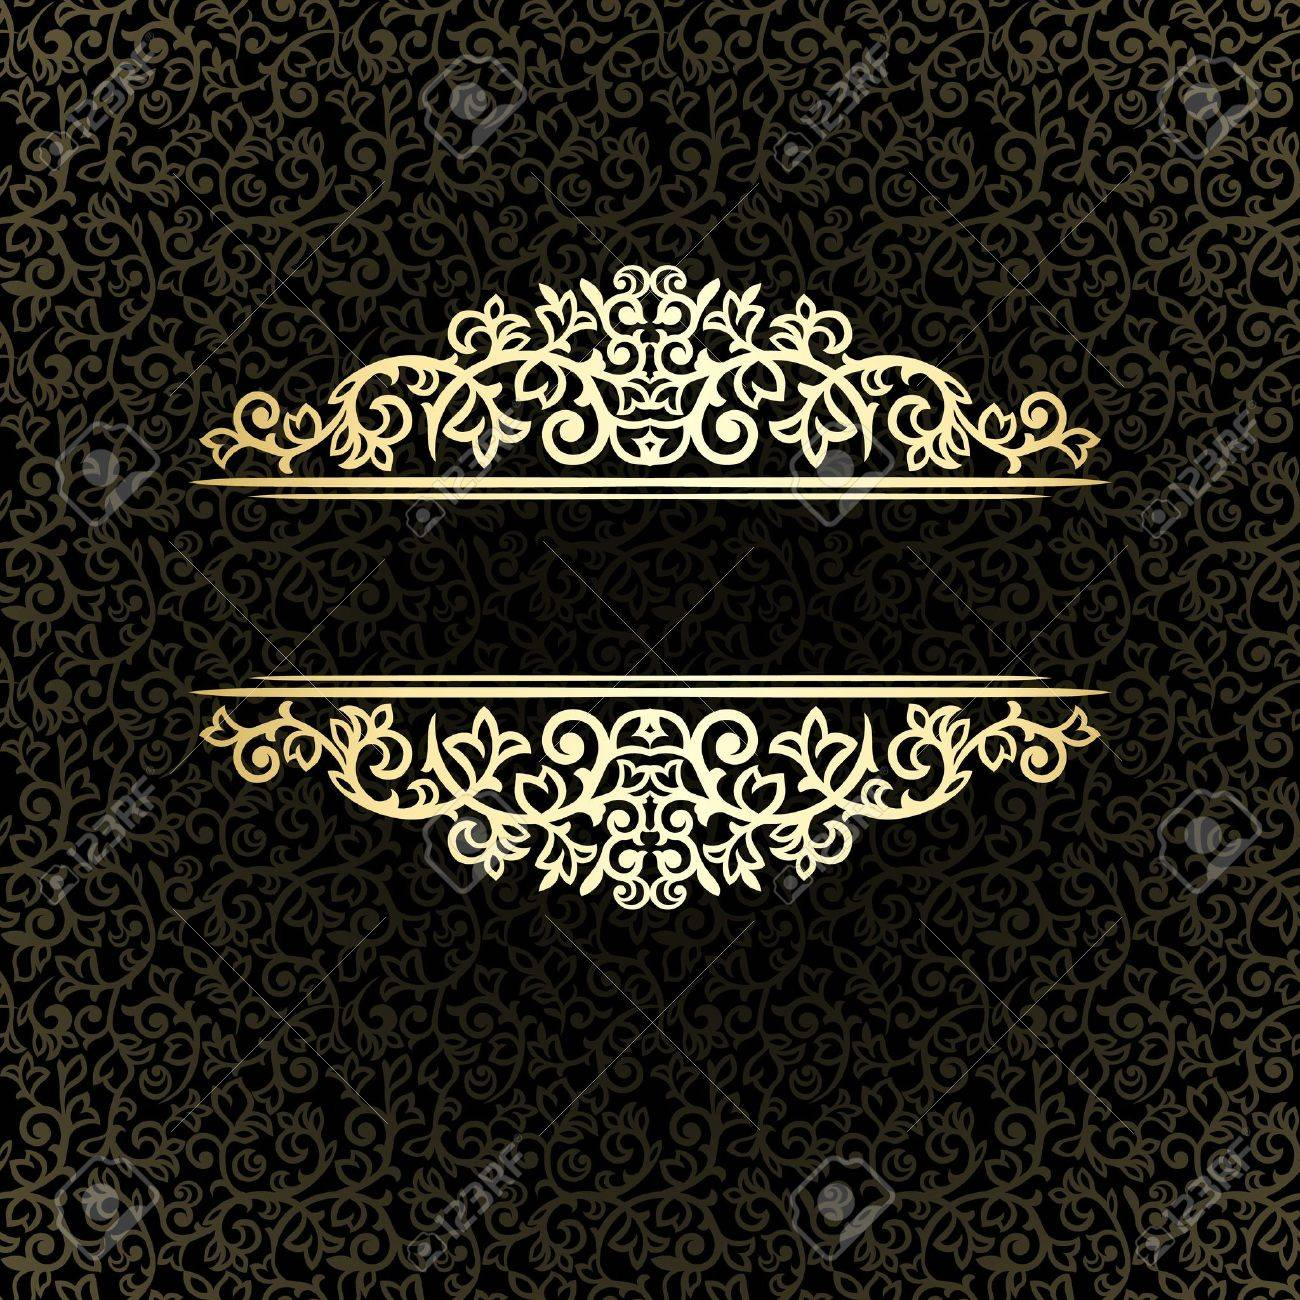 Vintage background ornate baroque pattern vector illustration stock - Vintage Golden Frame On Dark Ornate Background Stock Vector 21800362